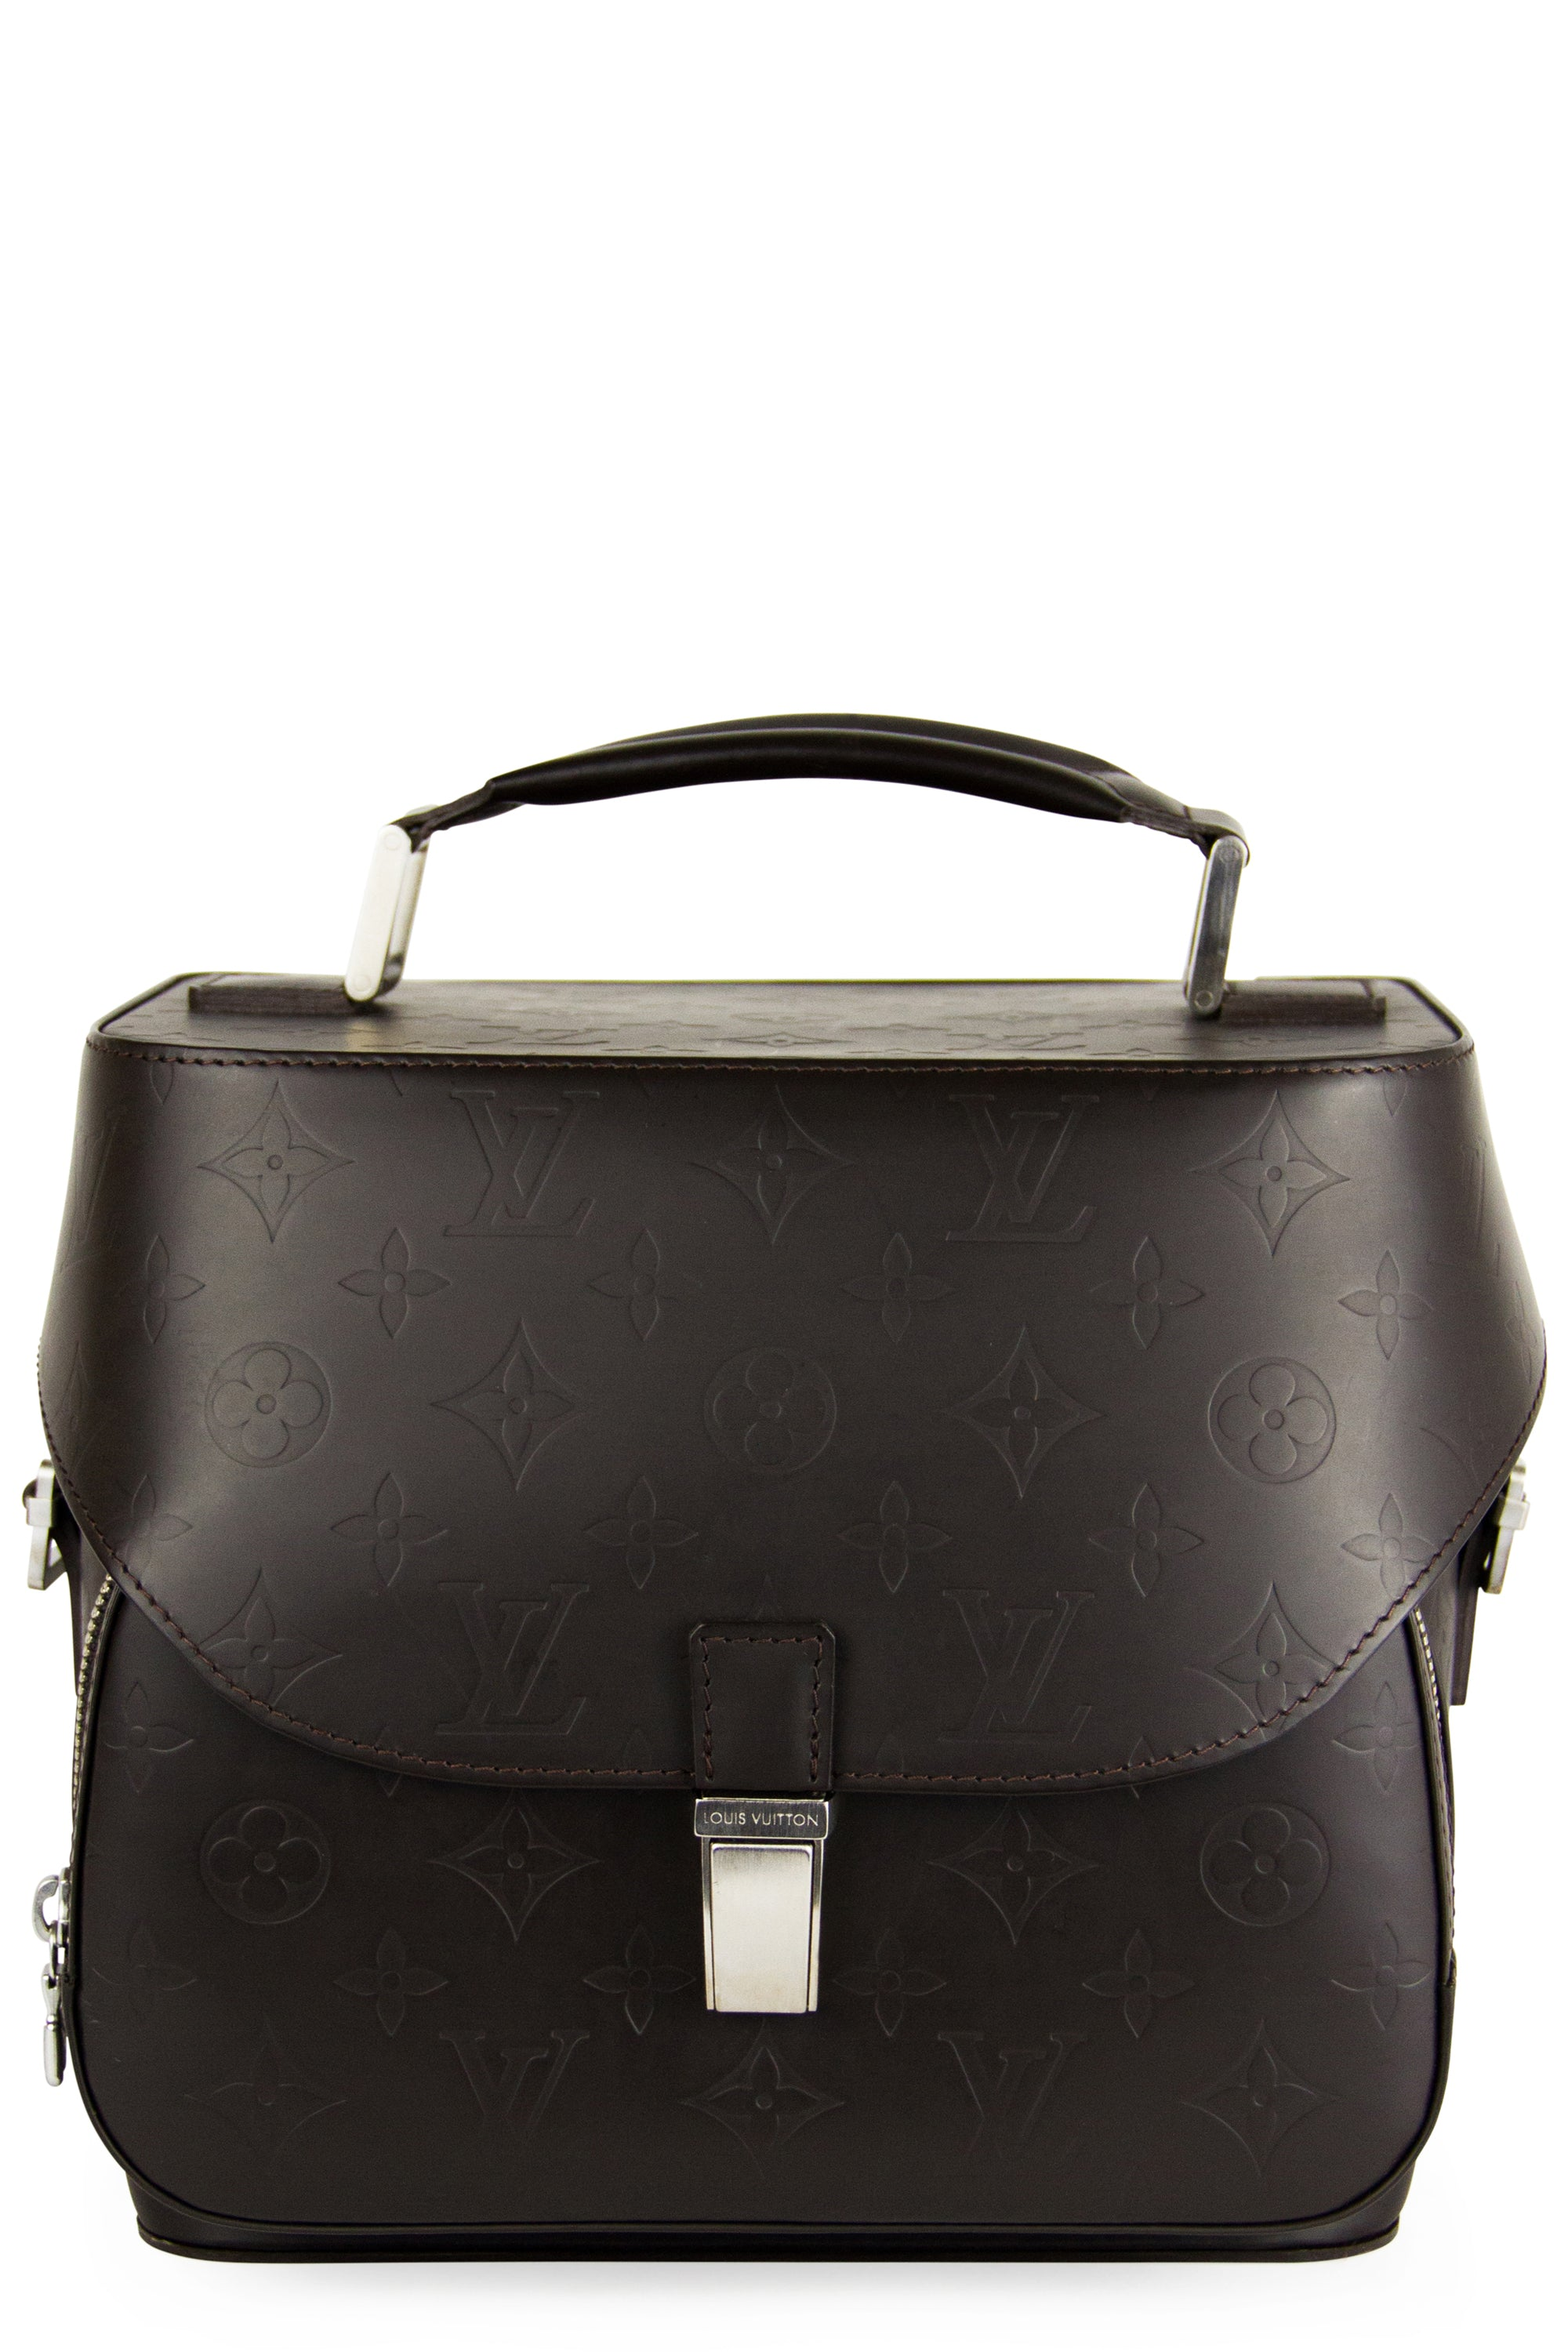 Louis Vuitton Grace Charlie Camera Bag Frontansicht Braun